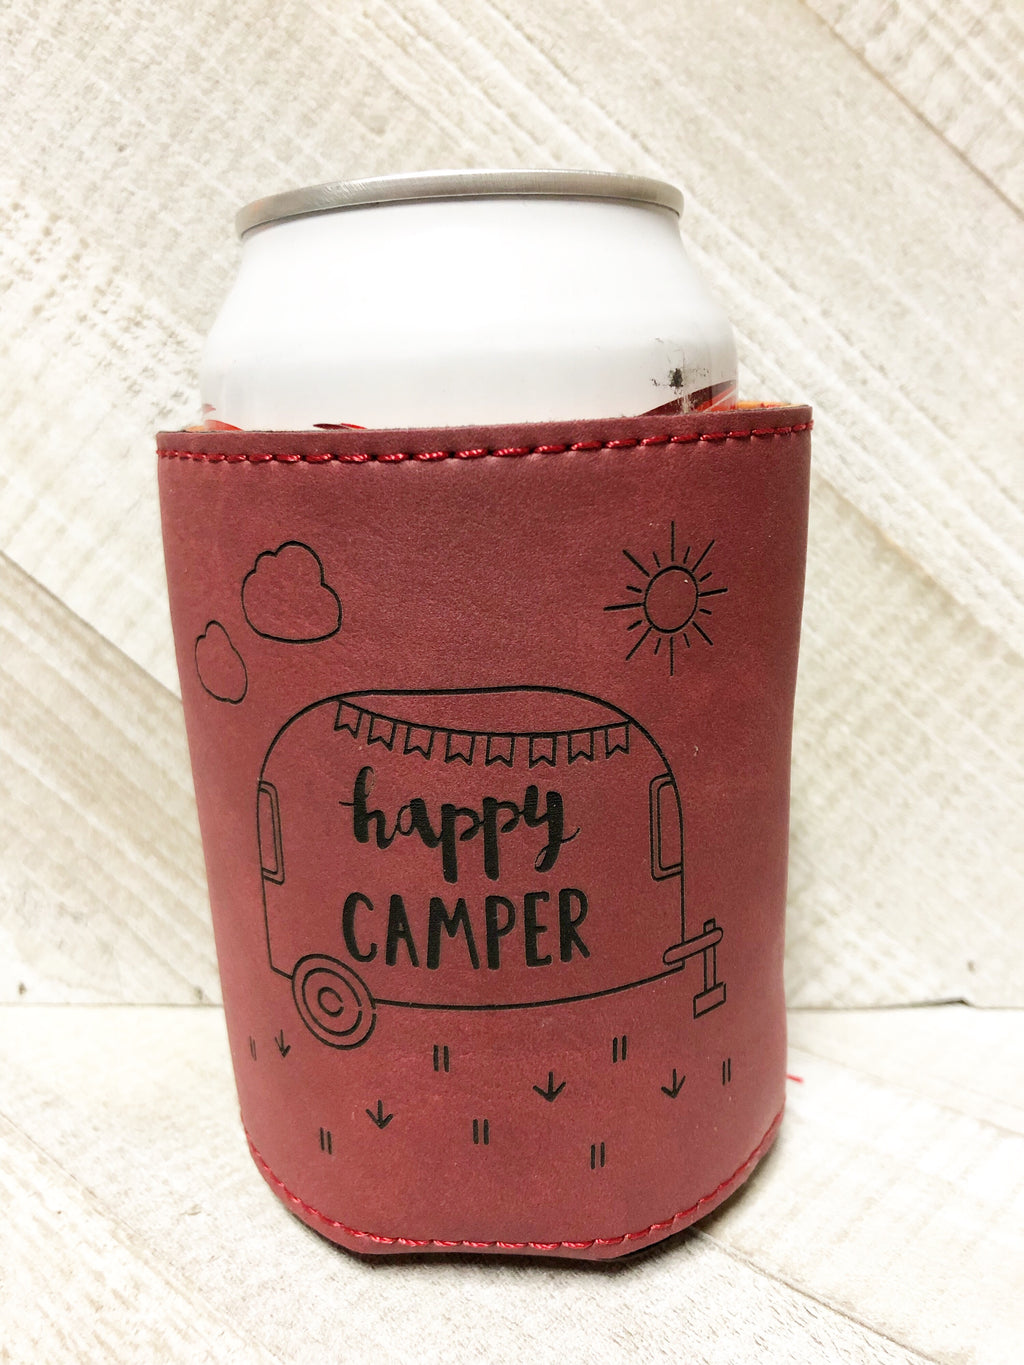 Engraved Beverage Koozie Holder- Happy Camper Maroon